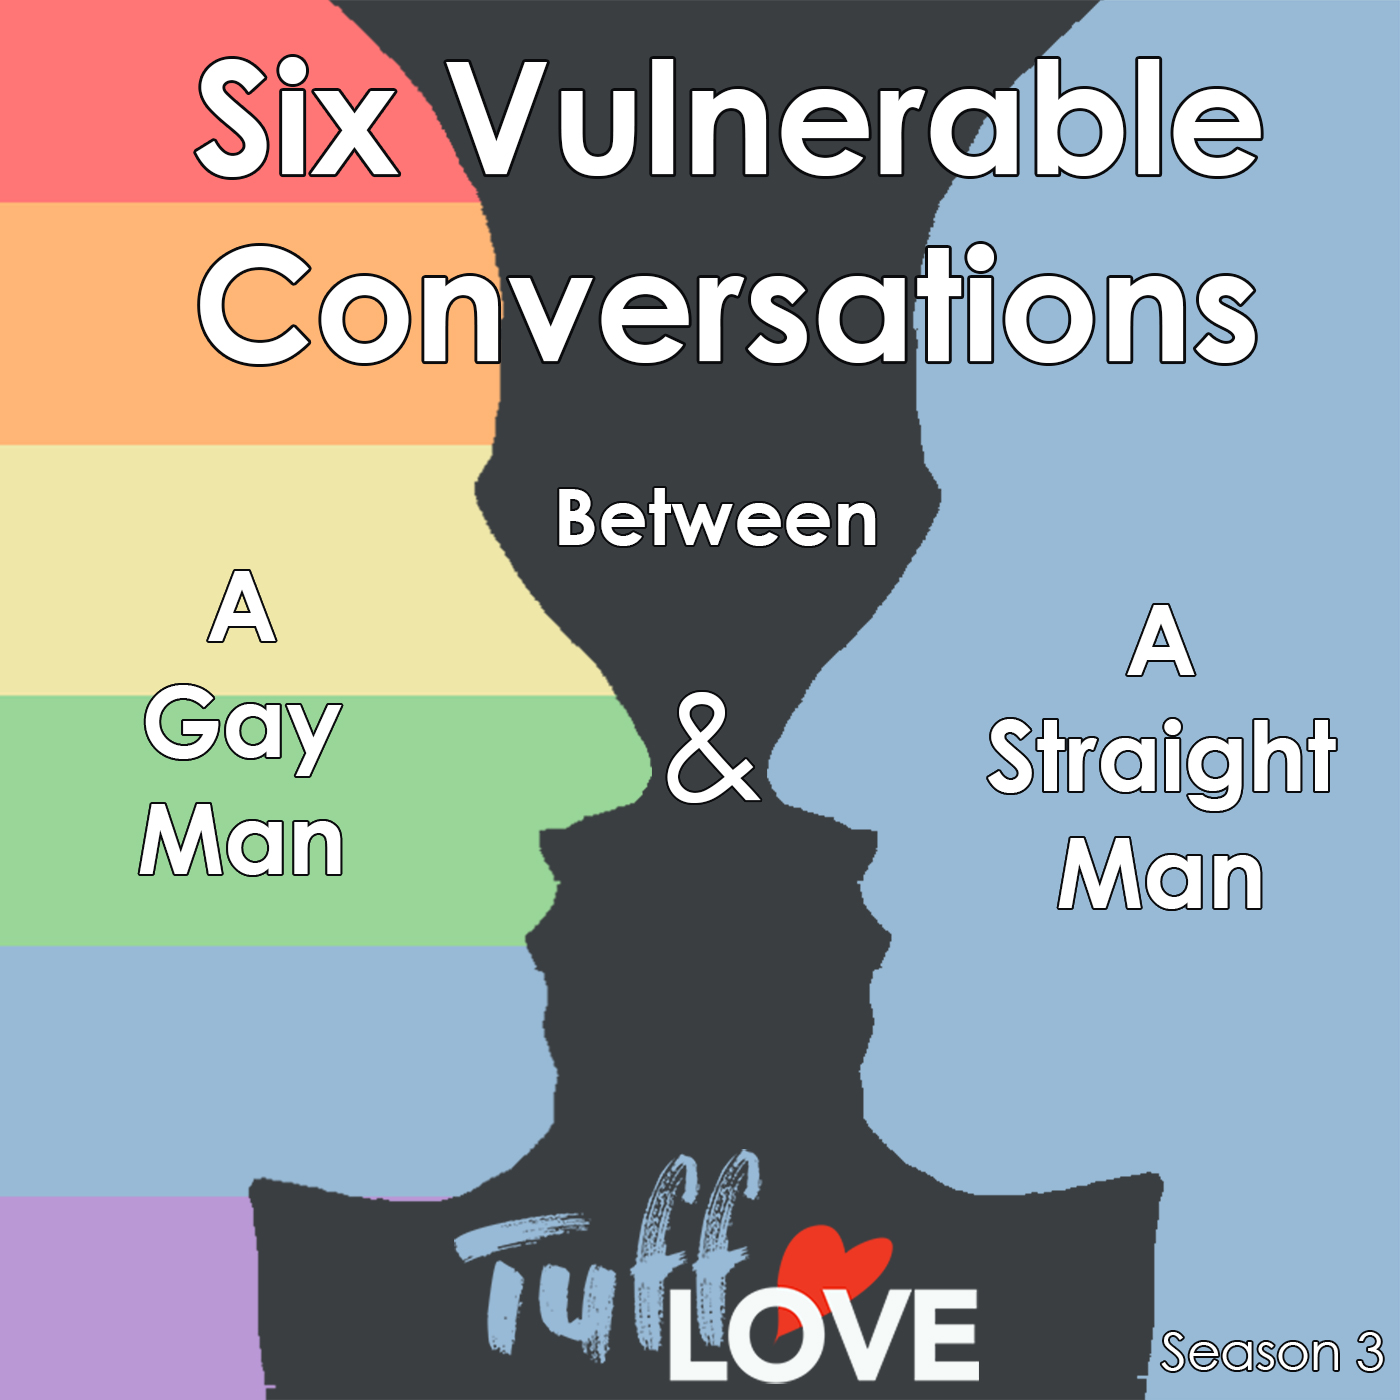 Six Vulnerable Conversations between a Gay Man and a Straight Man